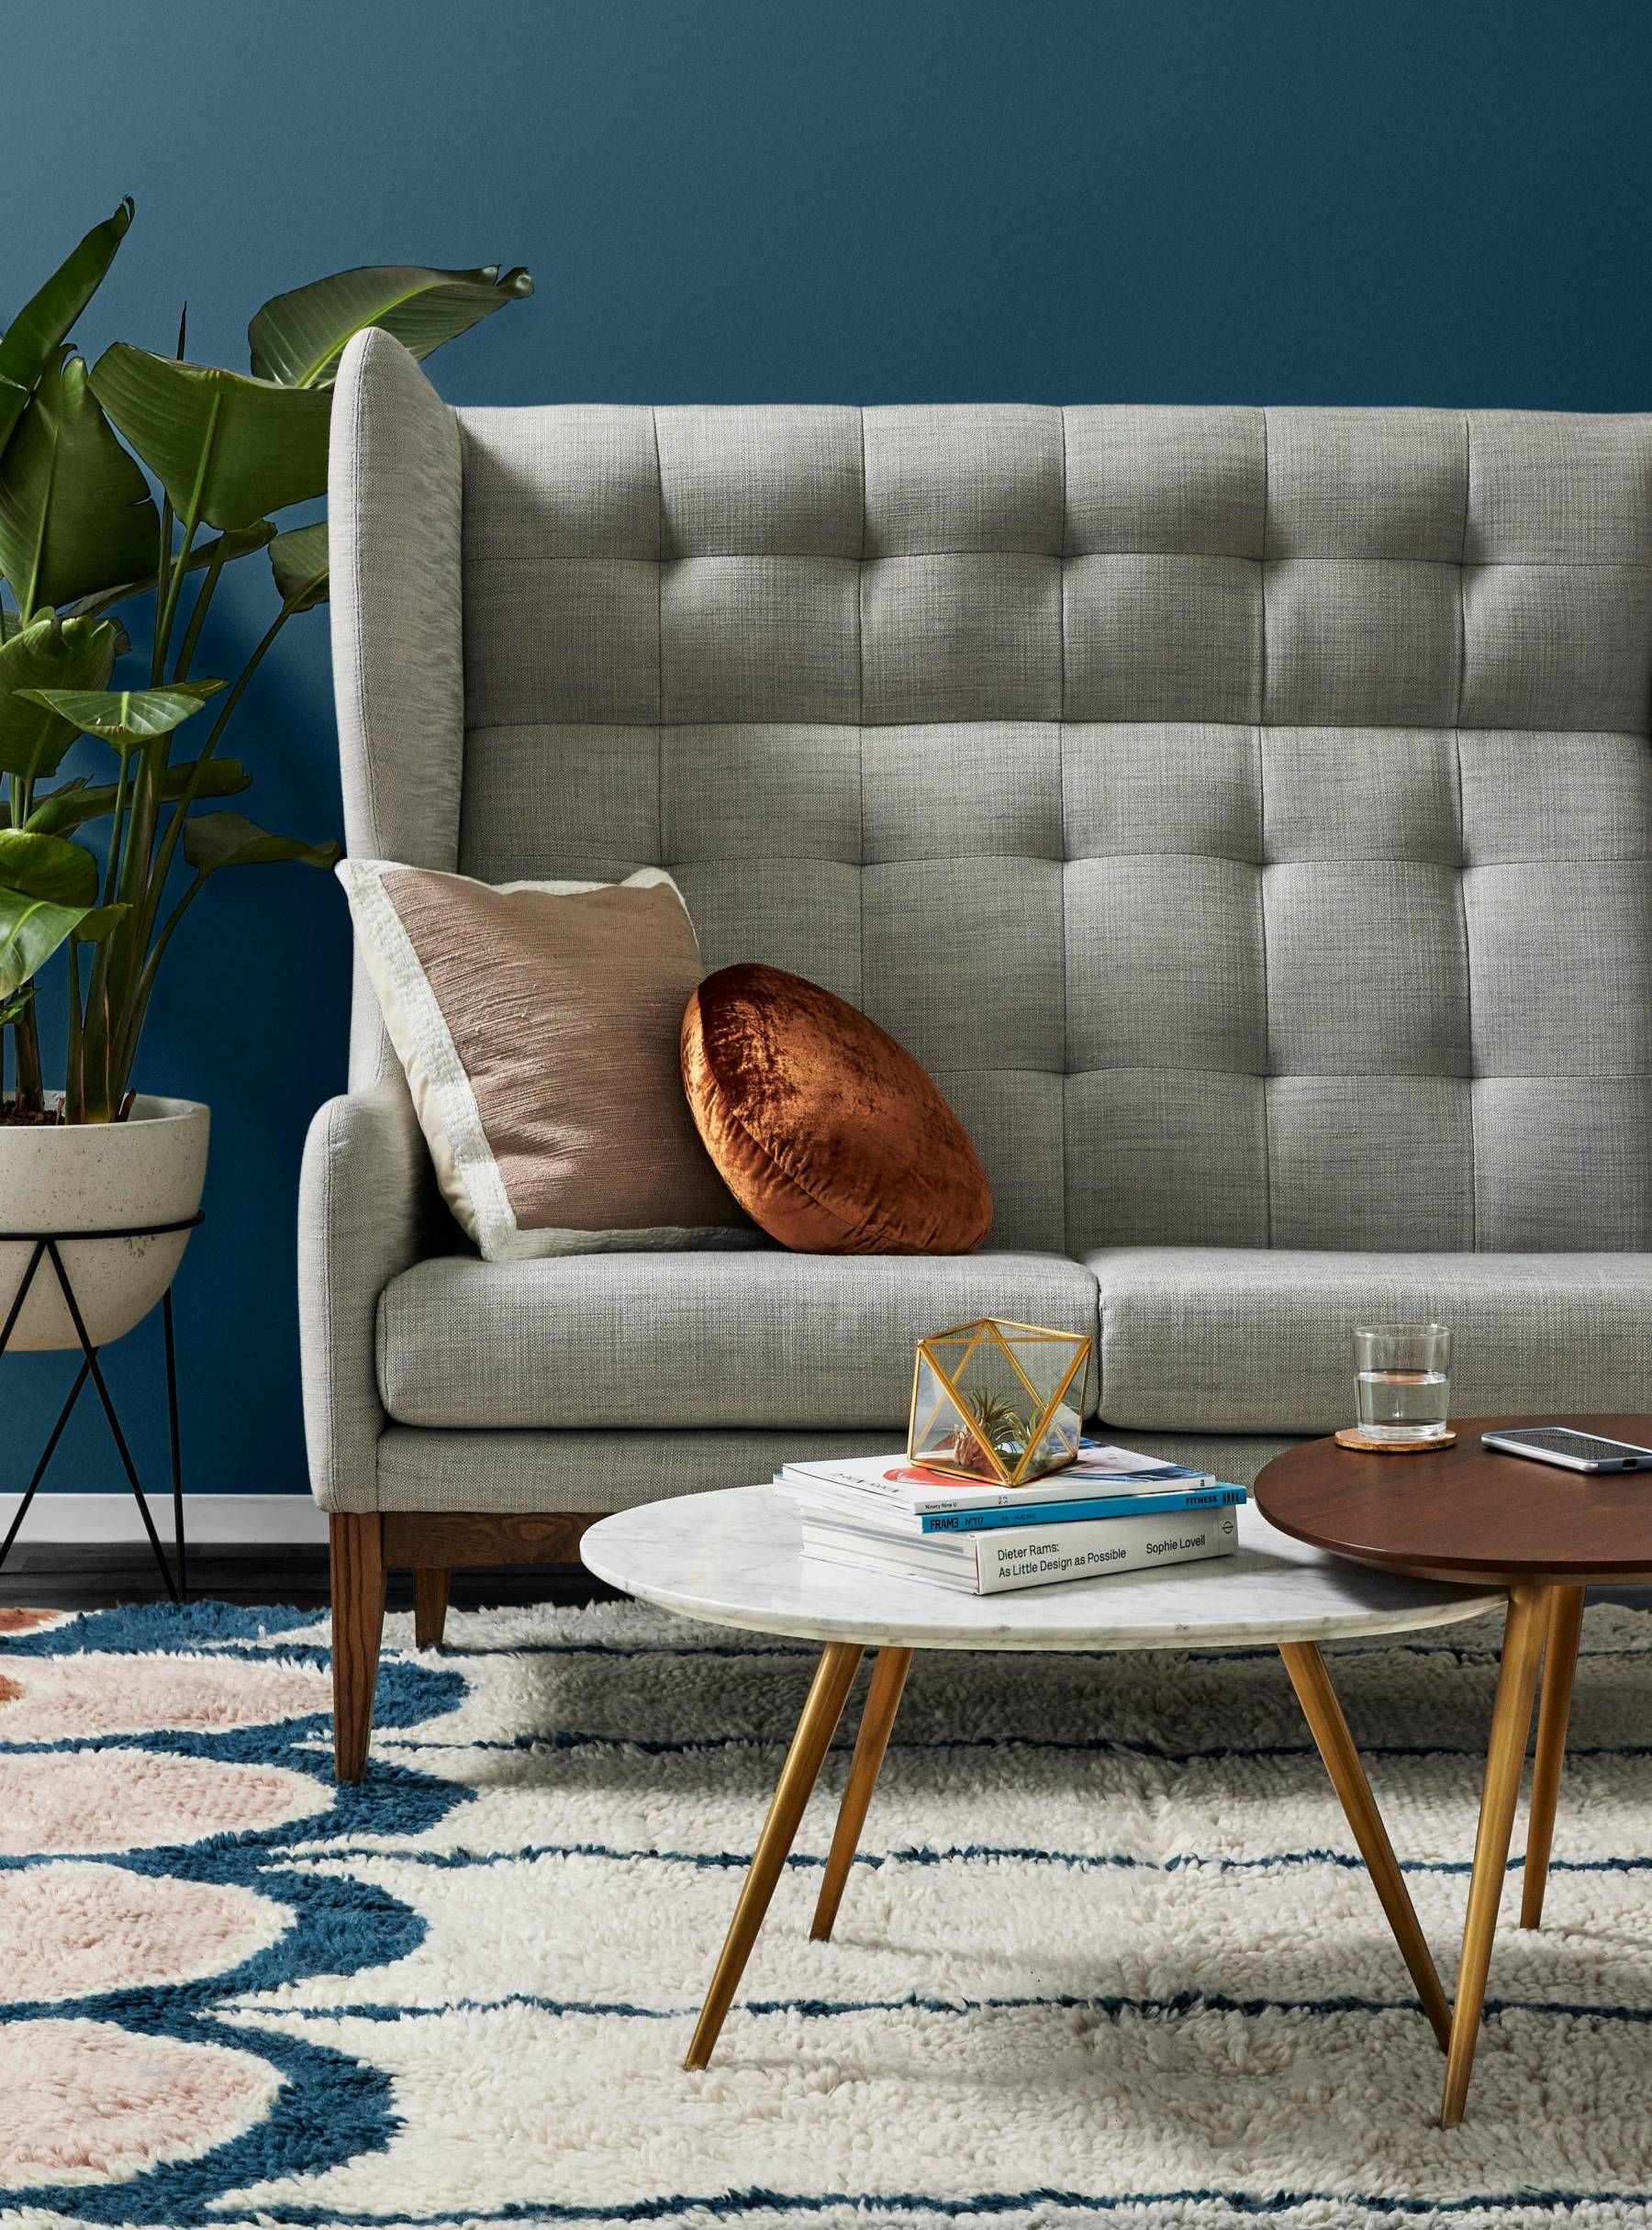 West Elm Residential Inspiration In The Workplace In 2019